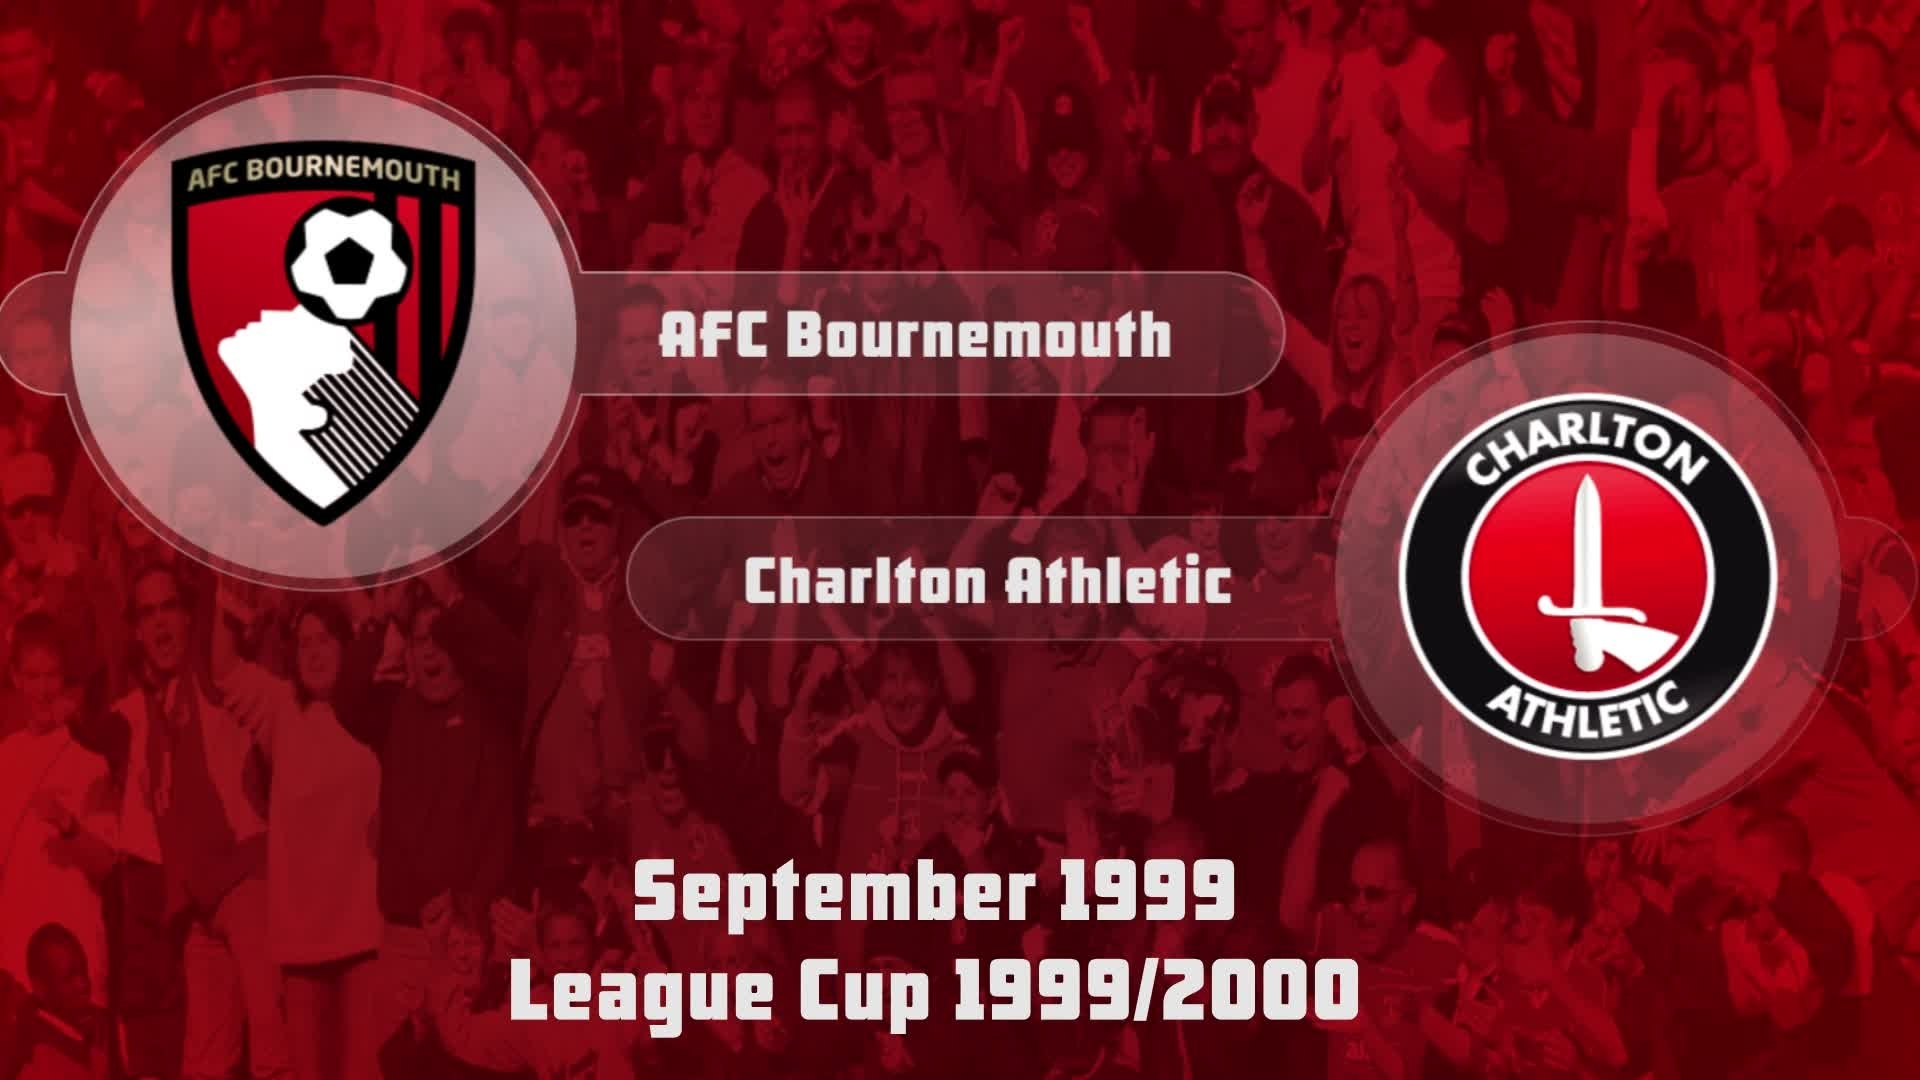 07 HIGHLIGHTS | AFC Bournemouth 0 Charlton 0 (League Cup Sept 1999)